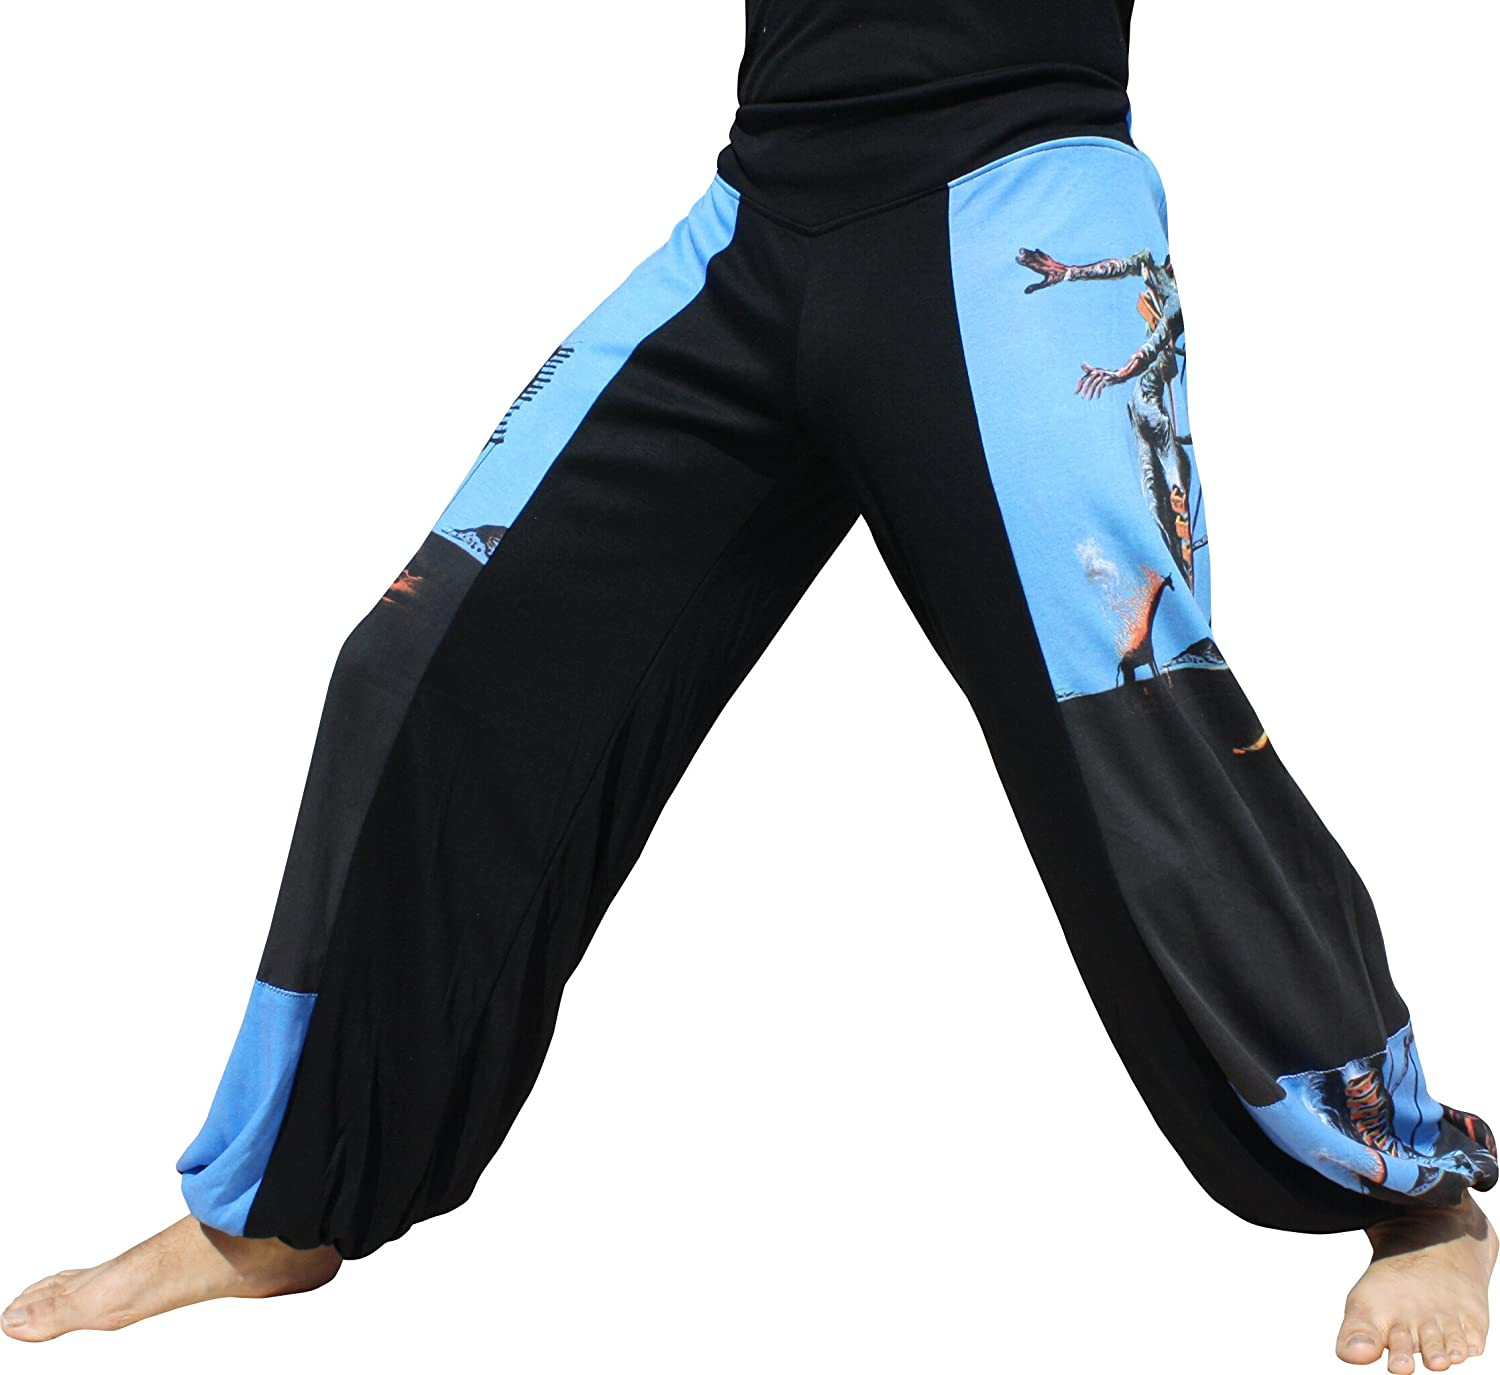 RaanPahMuang Side Patch Billowy Pants Salvadore Dali  Burning Giraffe